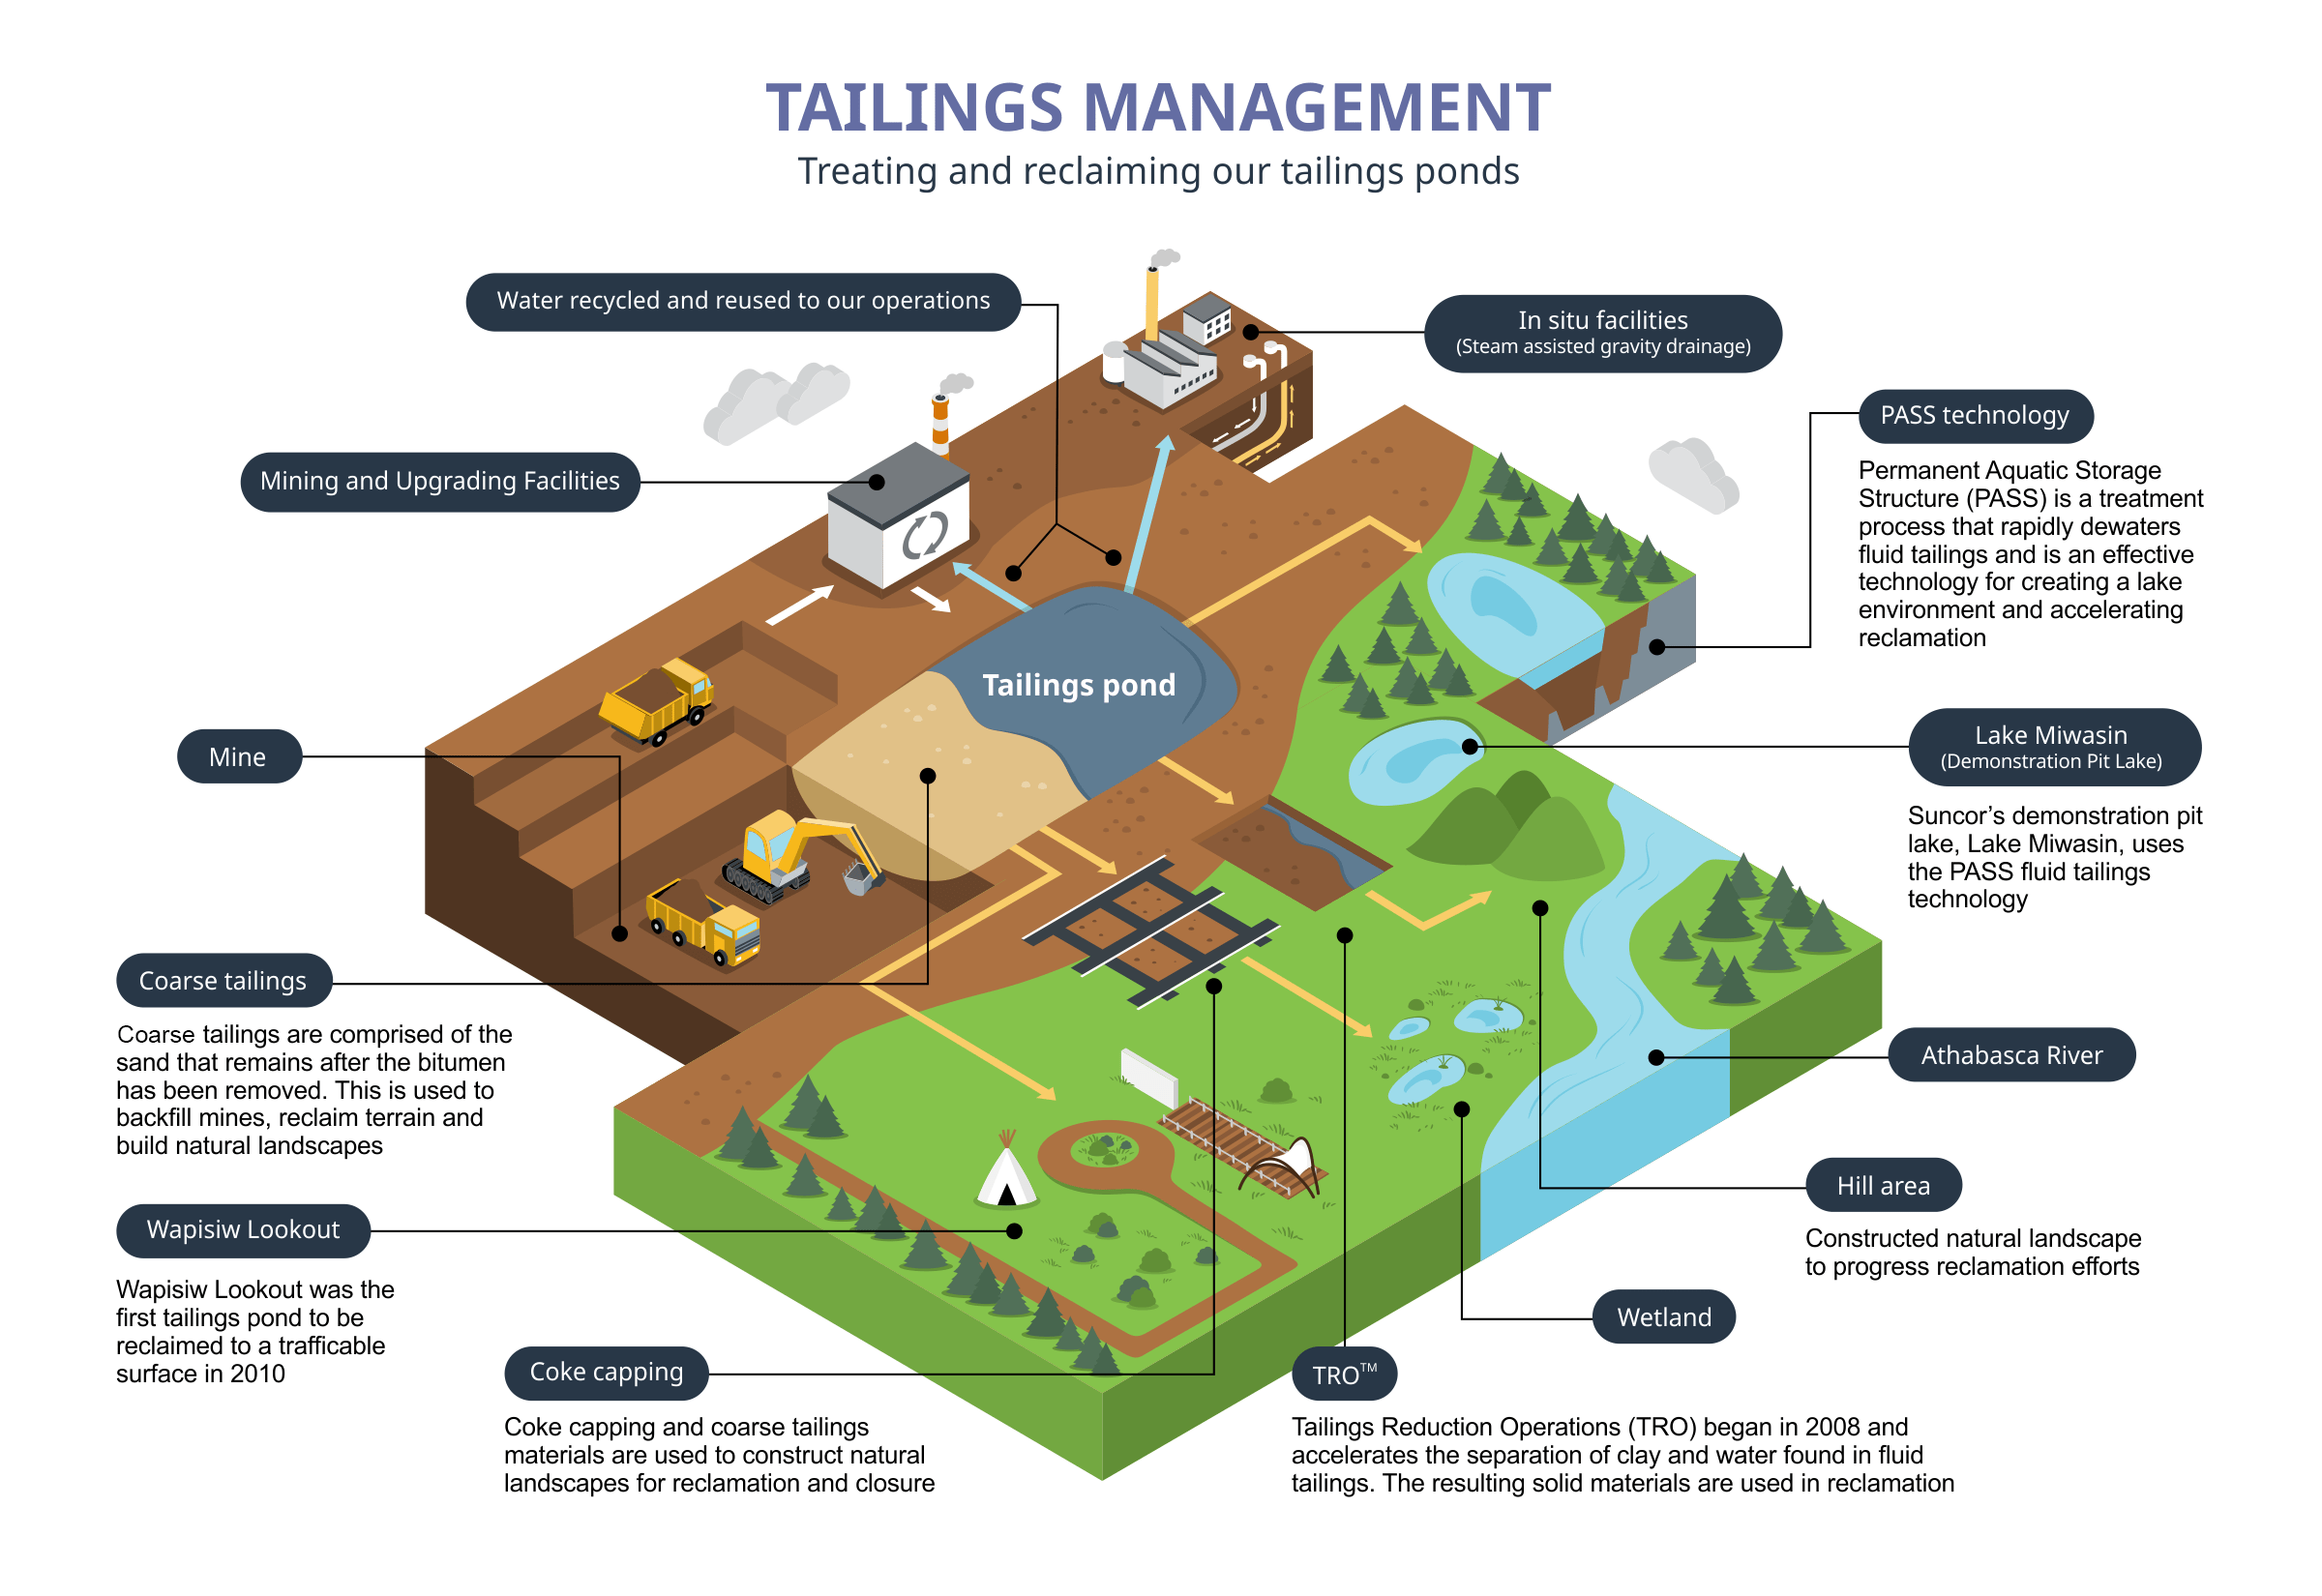 Tailings life cycle